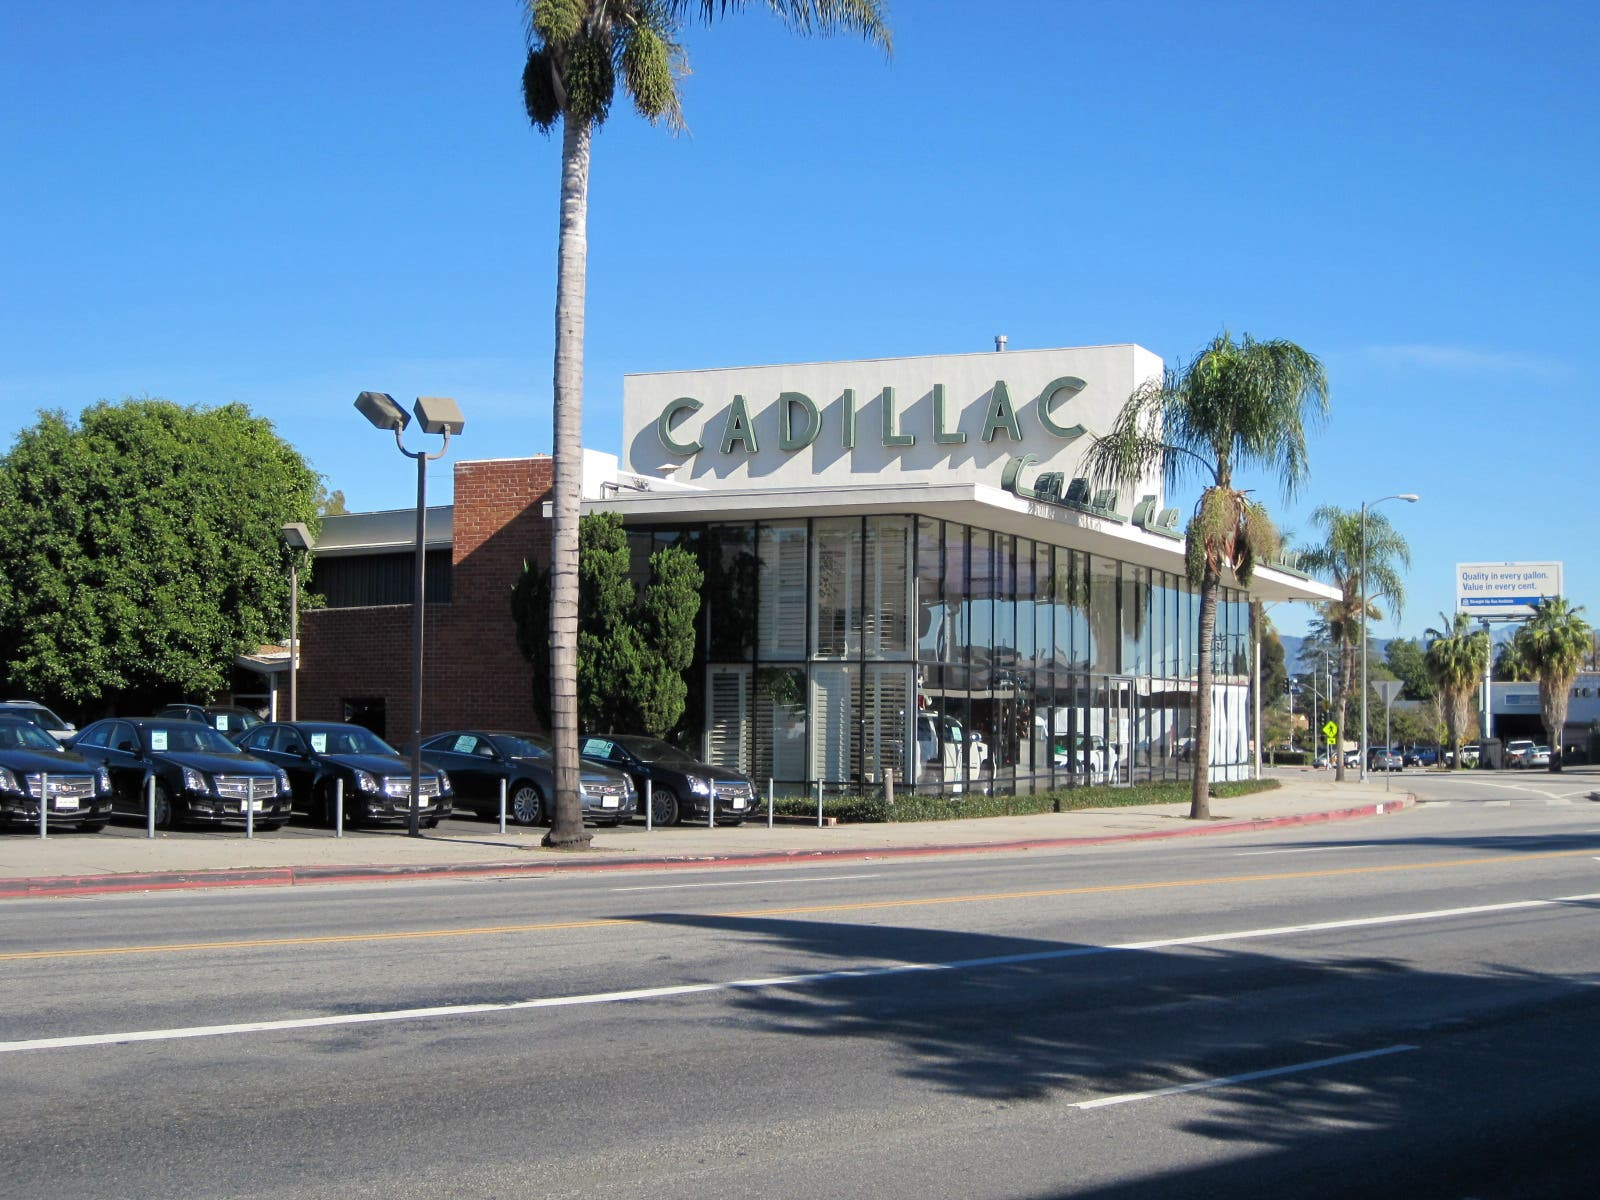 Fire Reported at Cadillac Dealership | Sherman Oaks, CA Patch